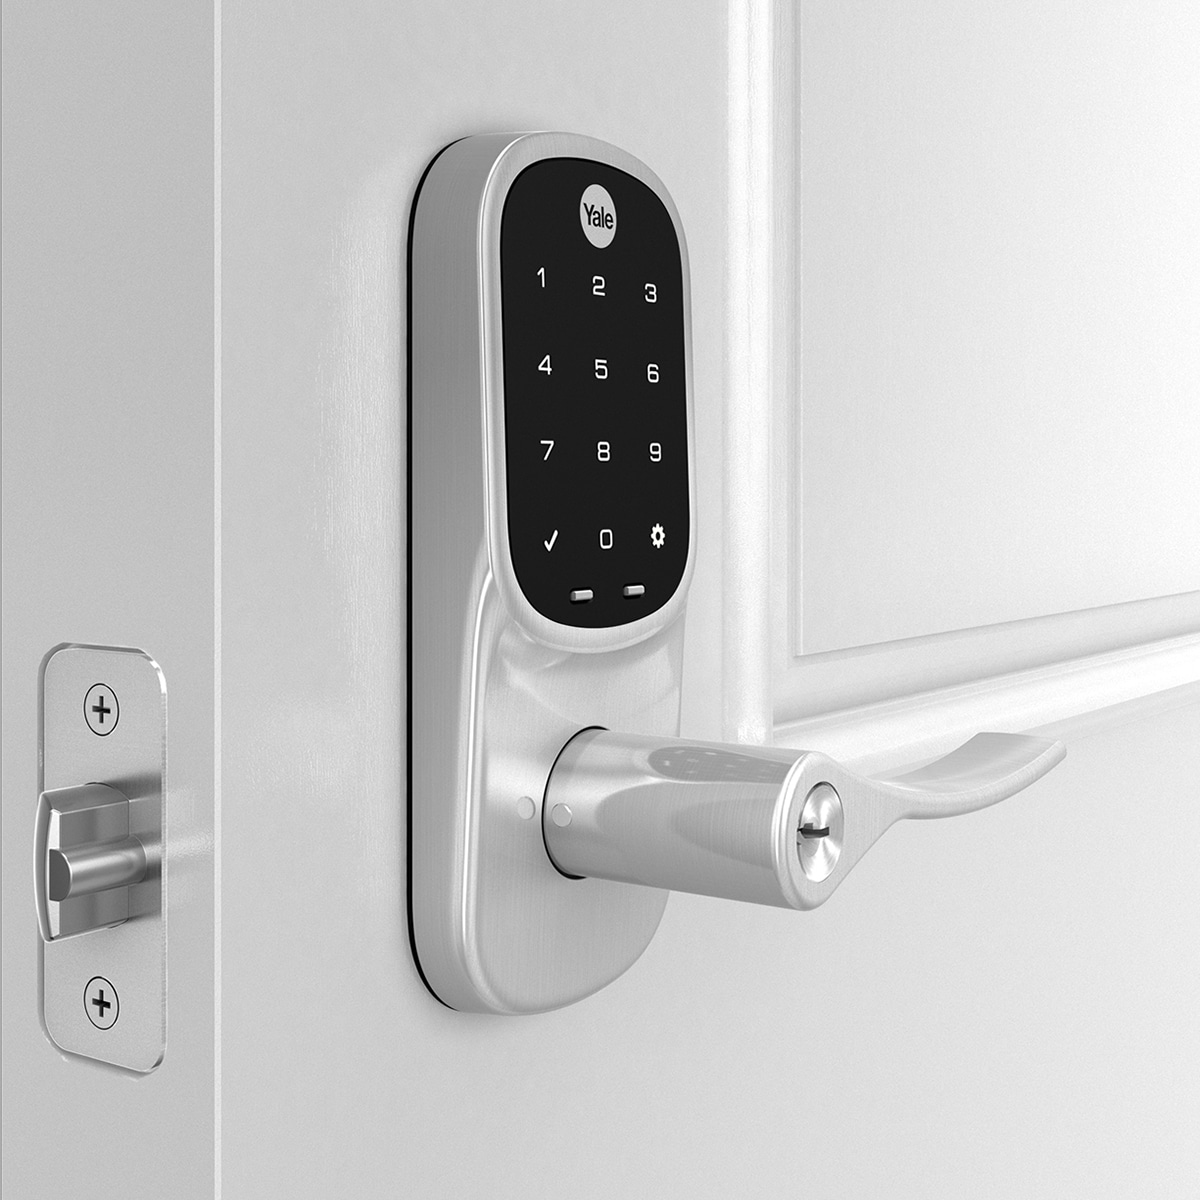 Assure Lever with Key. Upgrade your existing knob or lever with the Assure Lever and enjoy the convenience of unlocking and locking your door using the backlit touchscreen keypad; you'll never have to carry around your keys again.